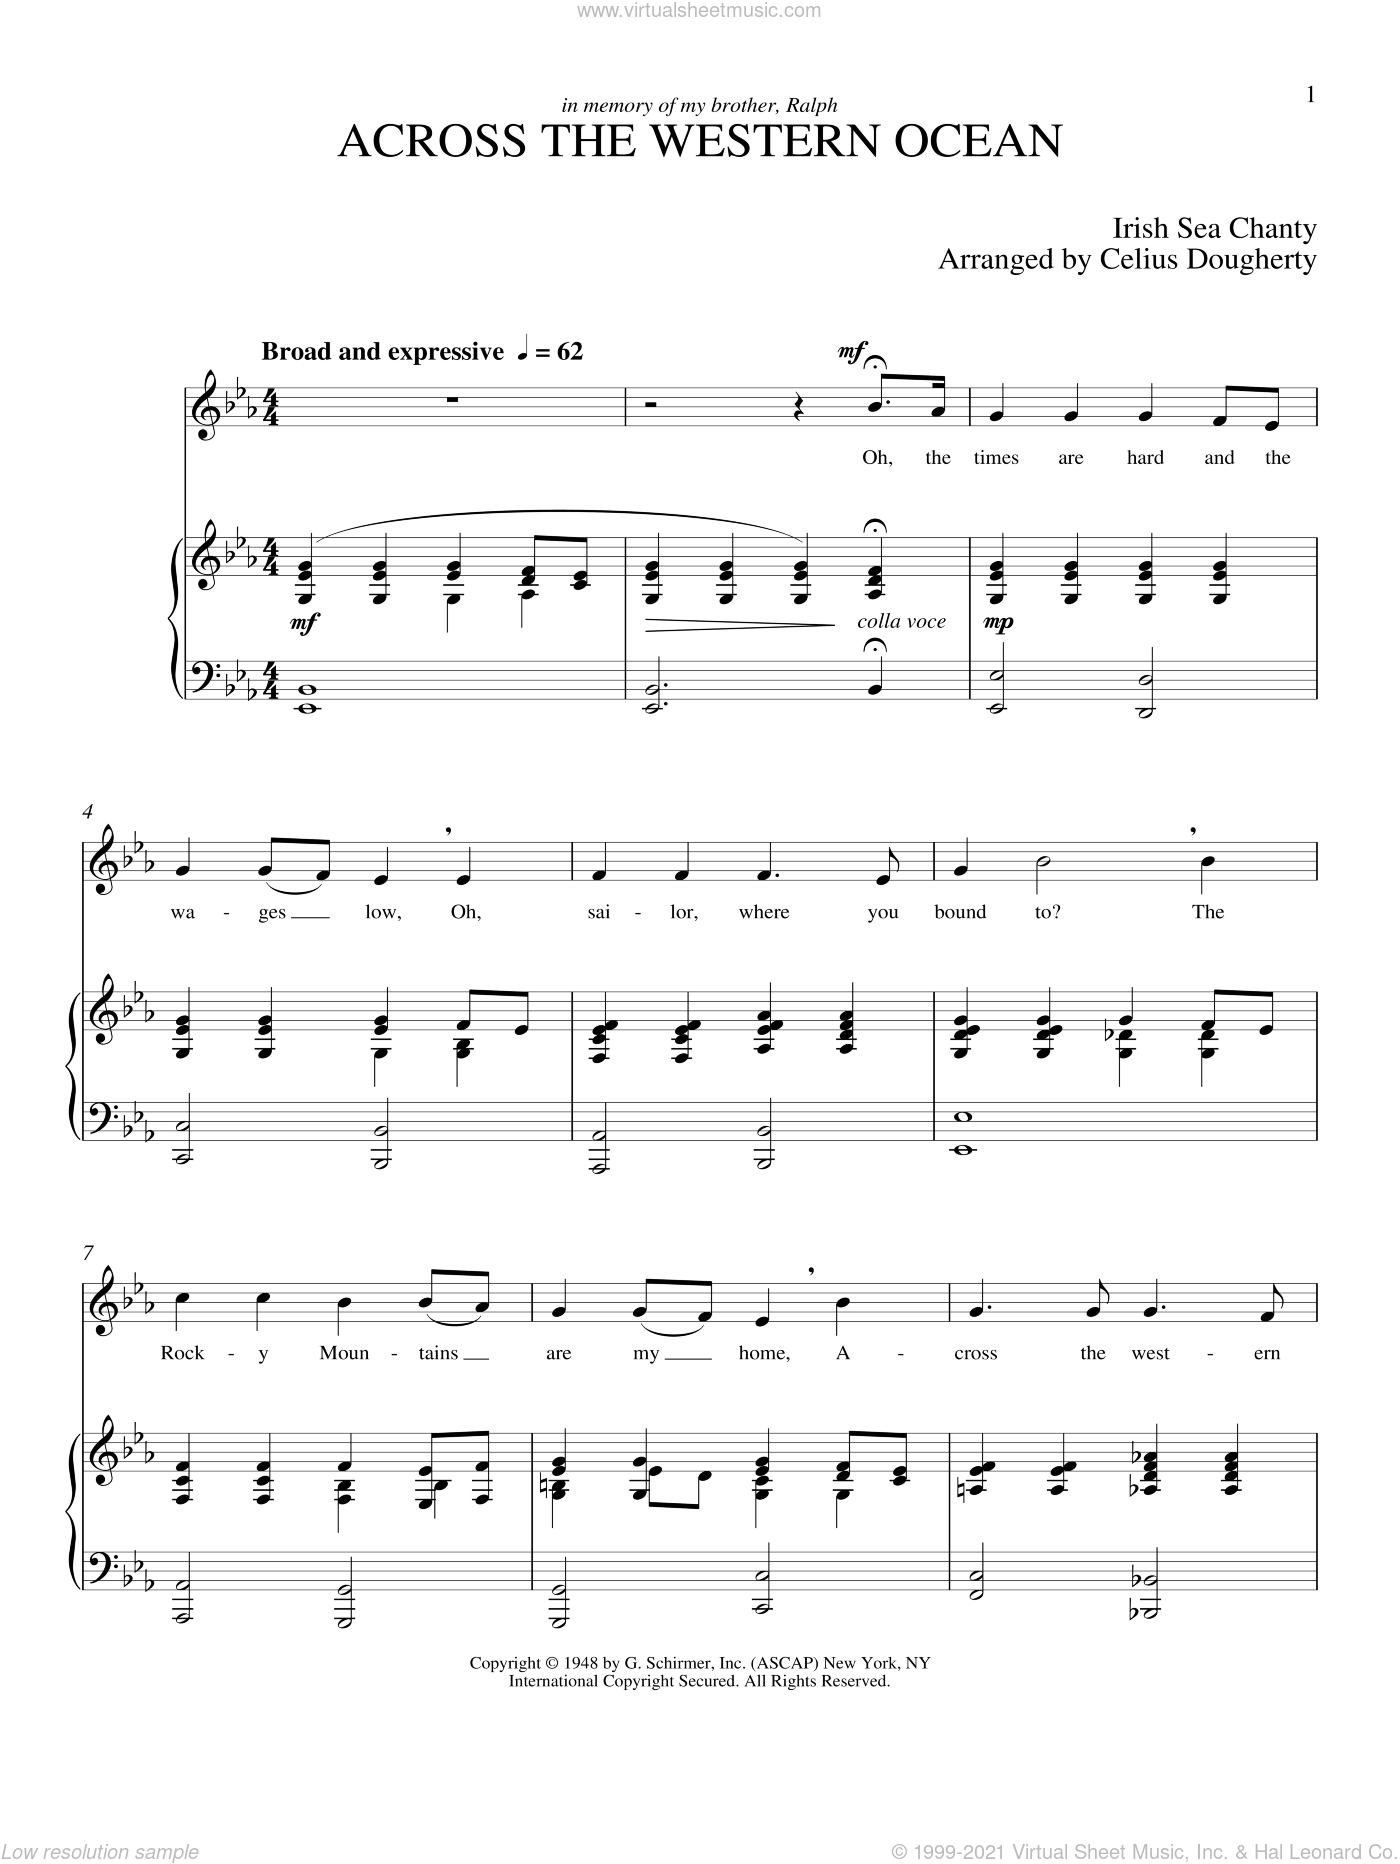 Across The Western Ocean (Five Sea Chanties, No. 3) sheet music for voice and piano (Tenor) by Celius Dougherty, classical score, intermediate skill level